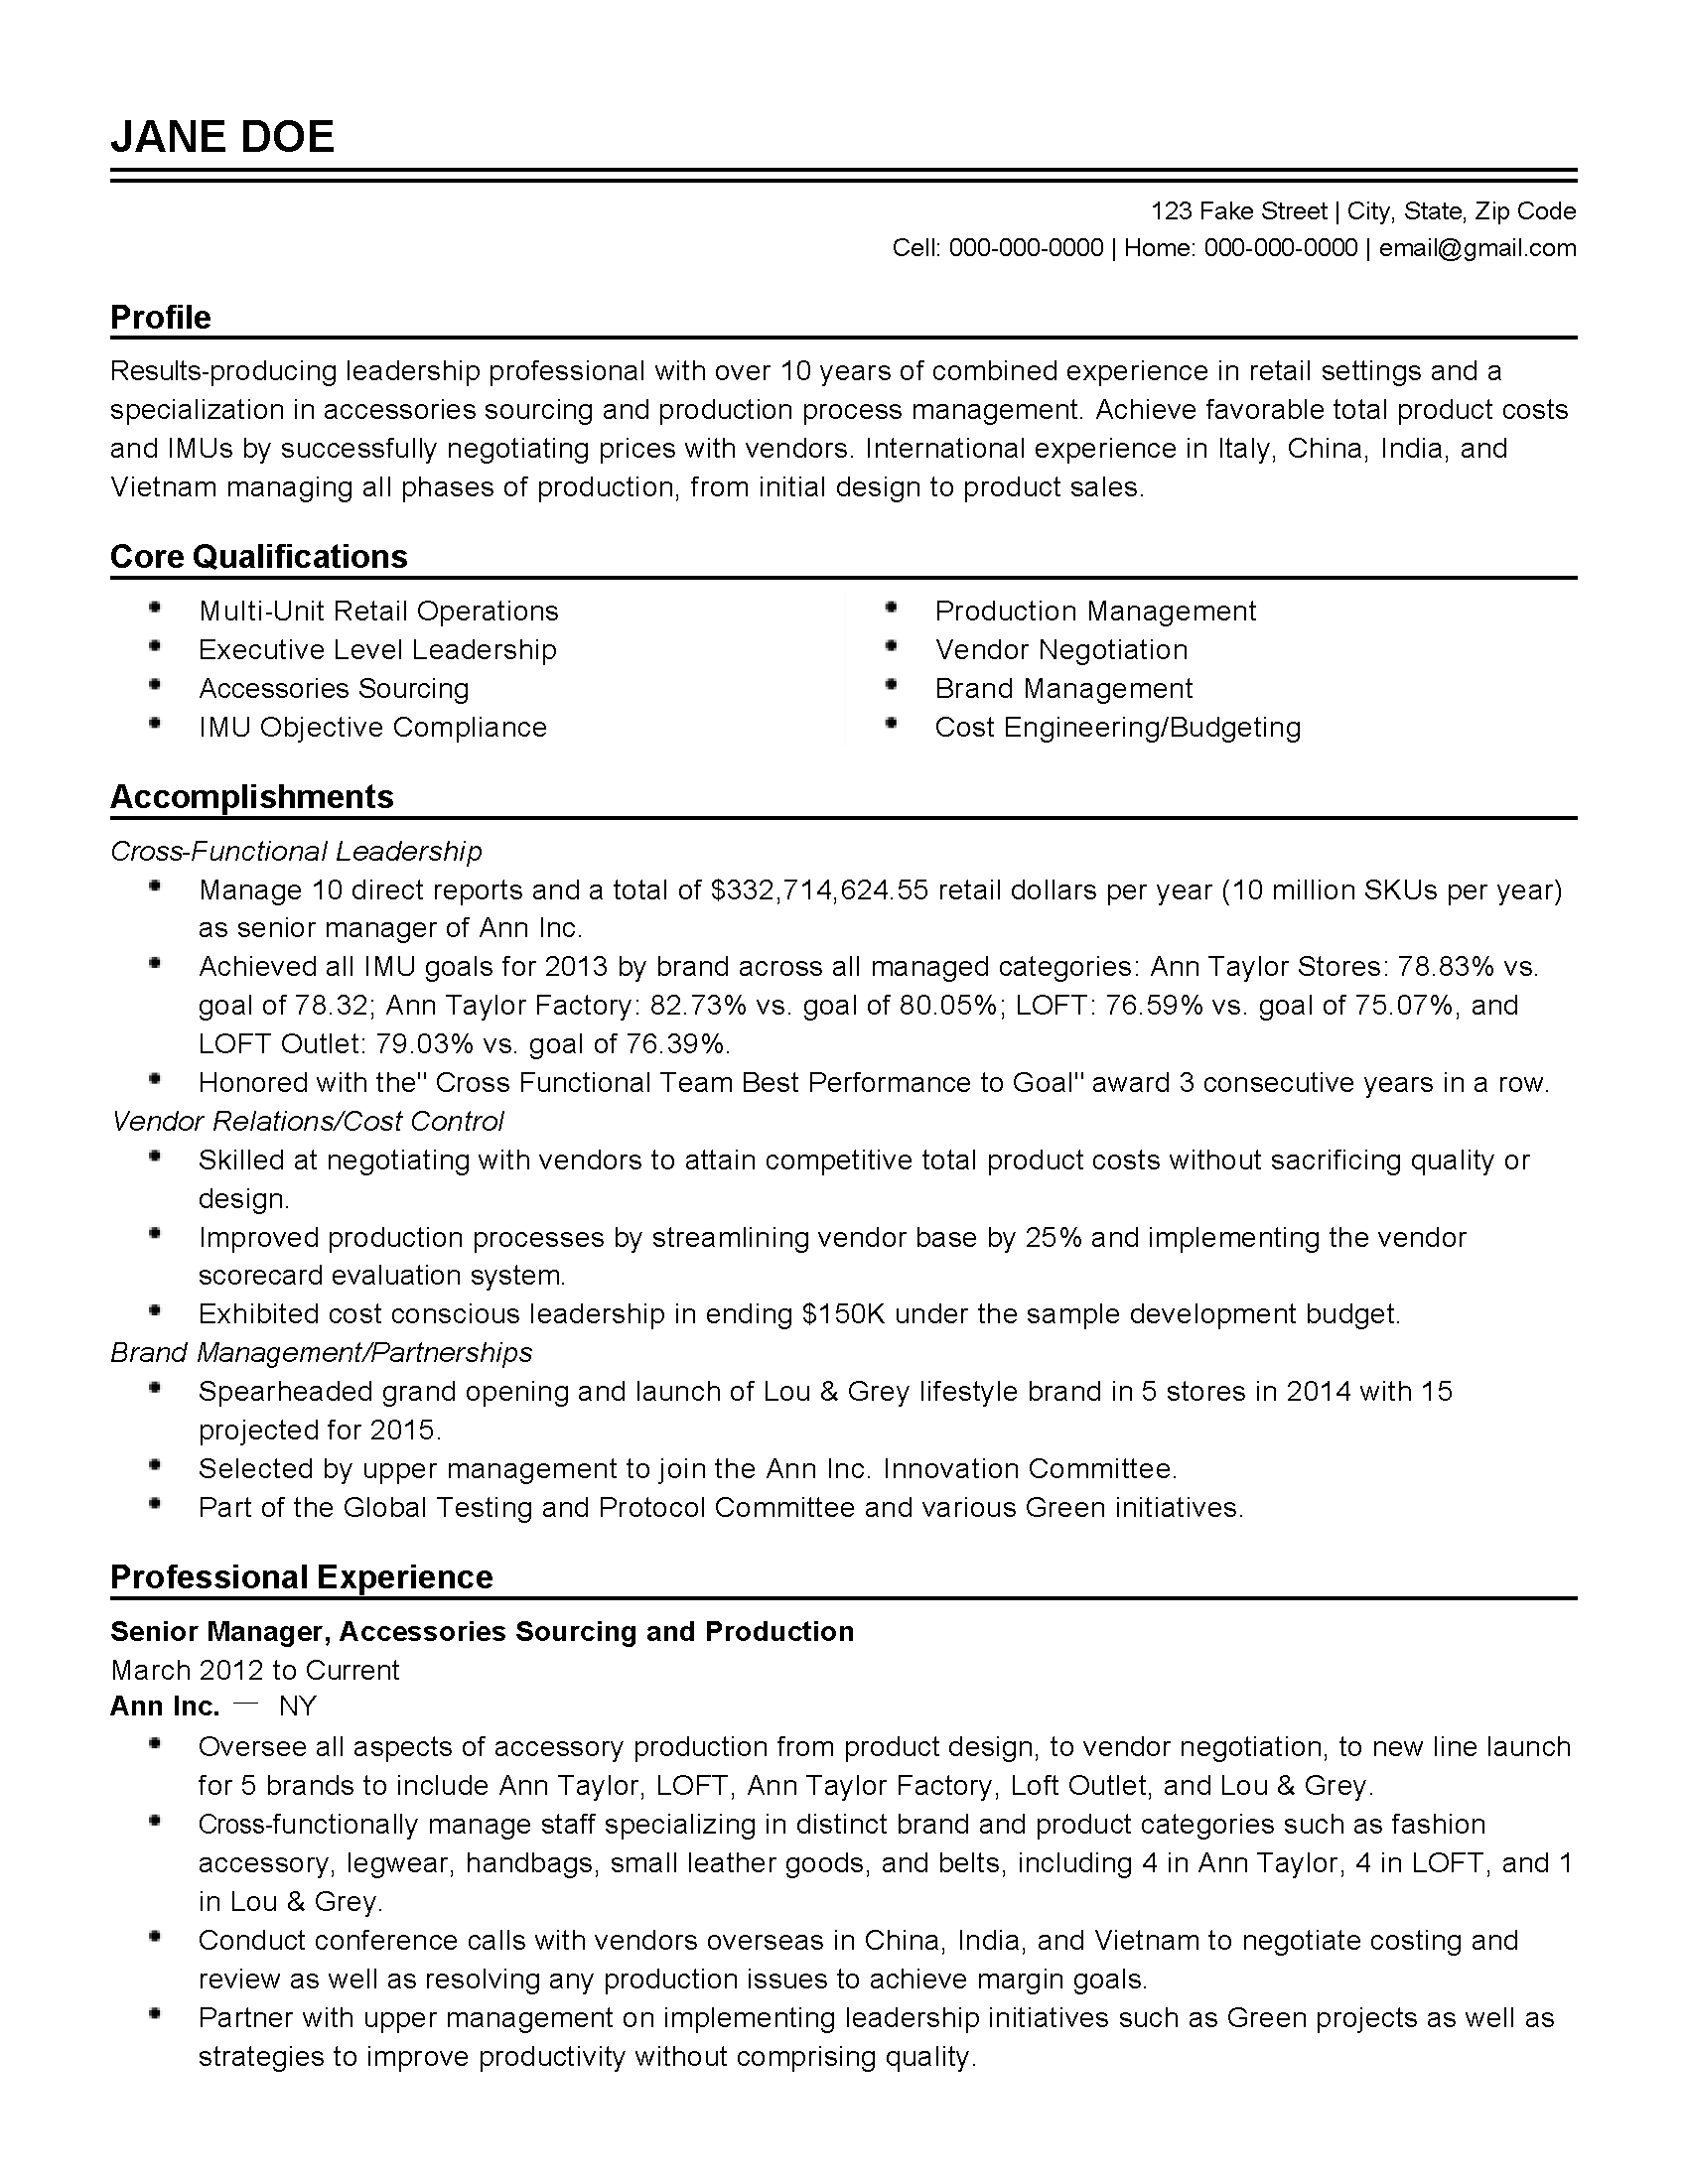 Resume Examples Over 10 Years Experience #examples #experience